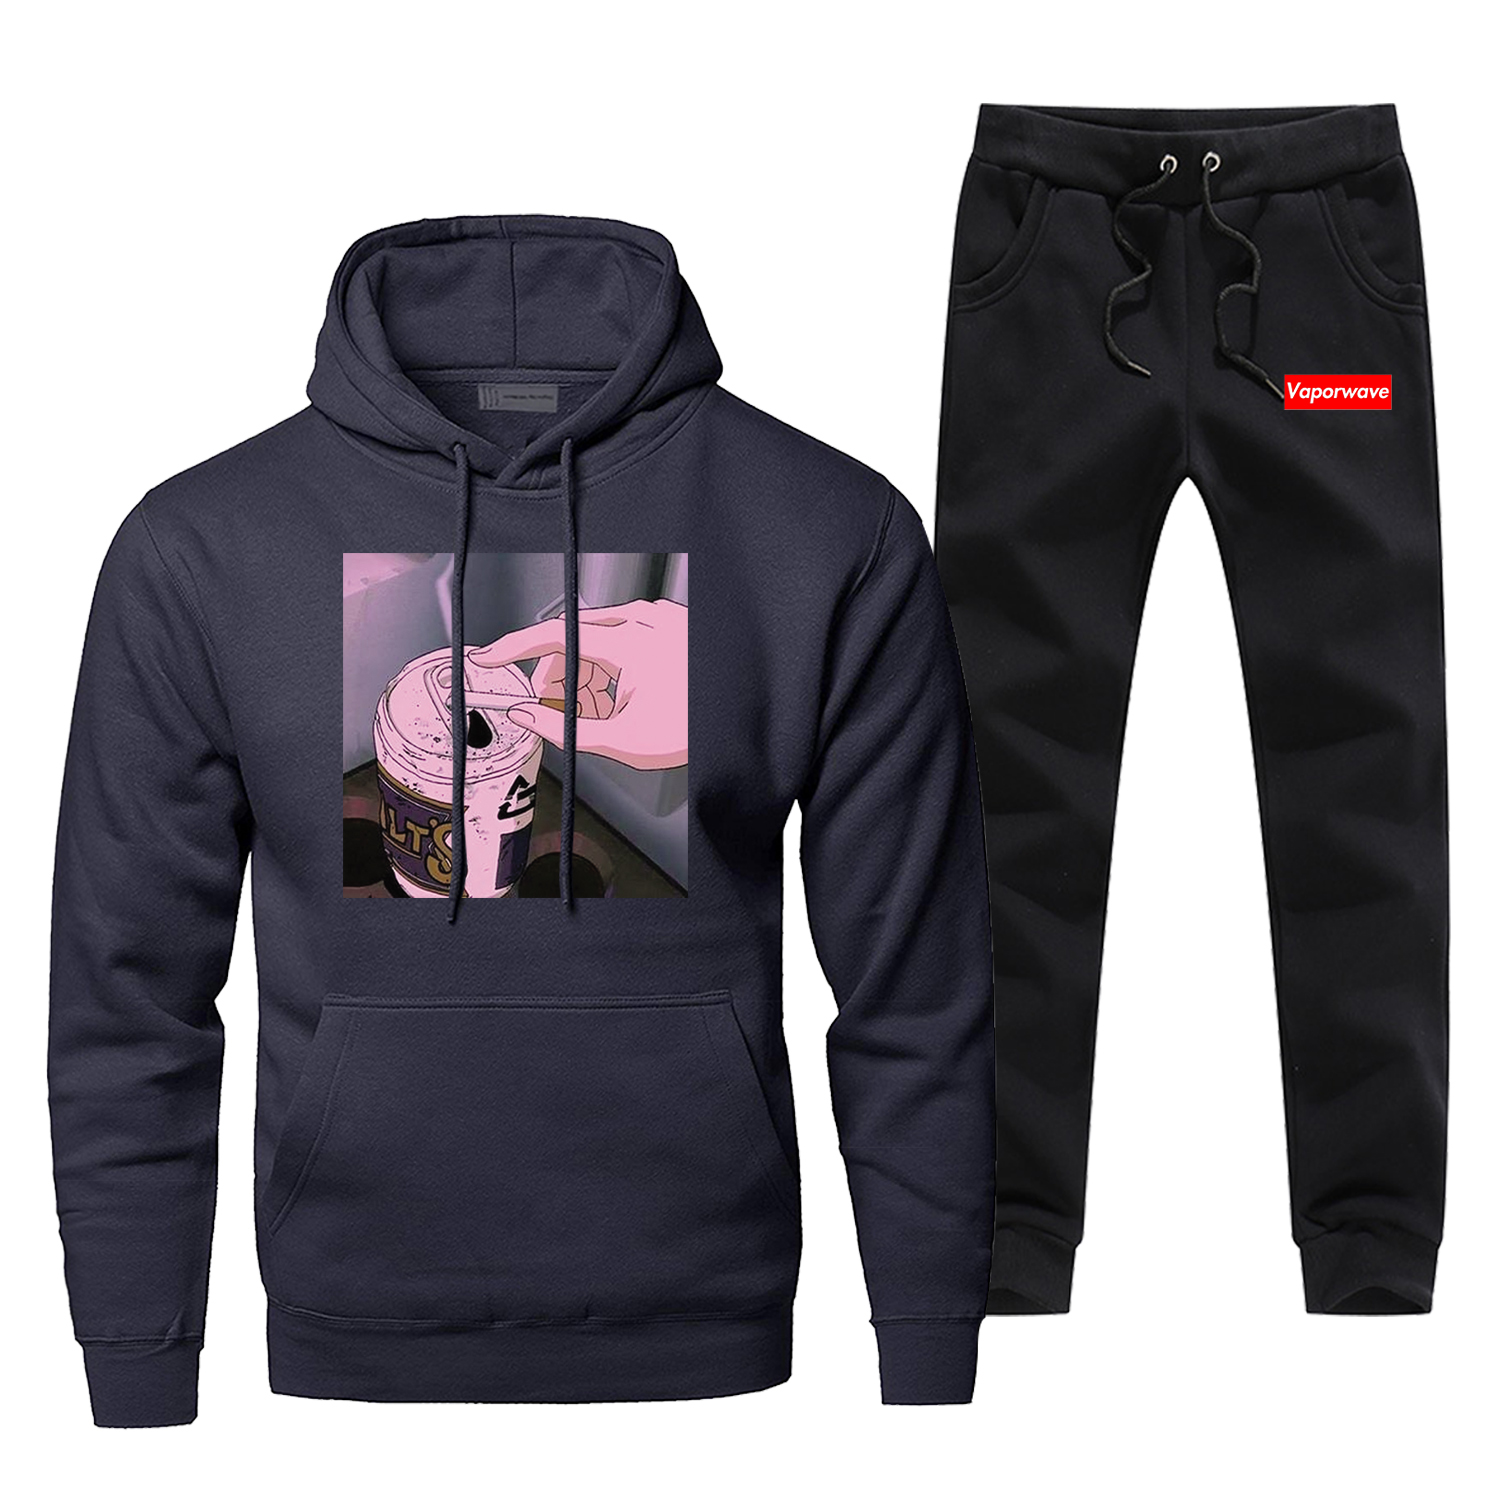 Japan Anime Men's Jogging Harajuku Fashion Complete Man Tracksuit Casual Fitness Gym Suit Winter Warm Streetwear Chandal Hombre